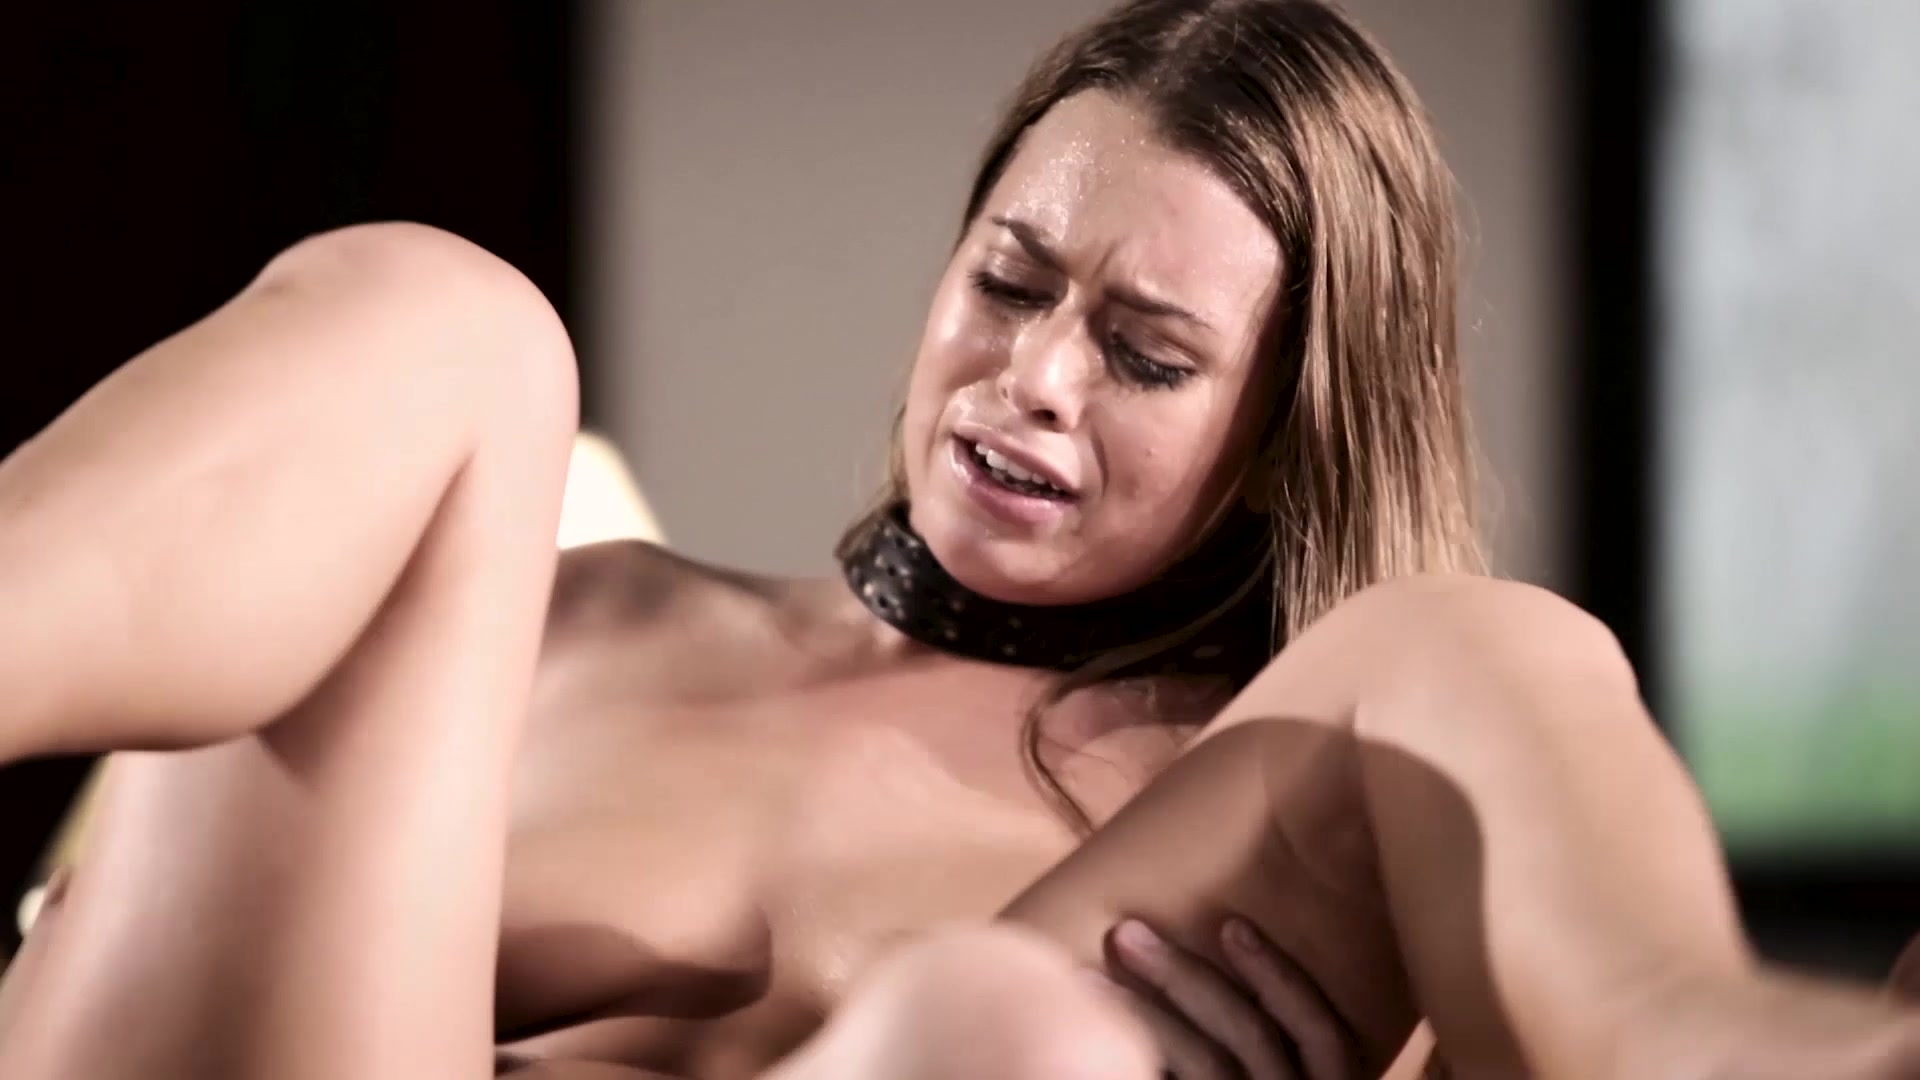 Scene with Kristen Scott (II) and Jill Kassidy - image 14 out of 20